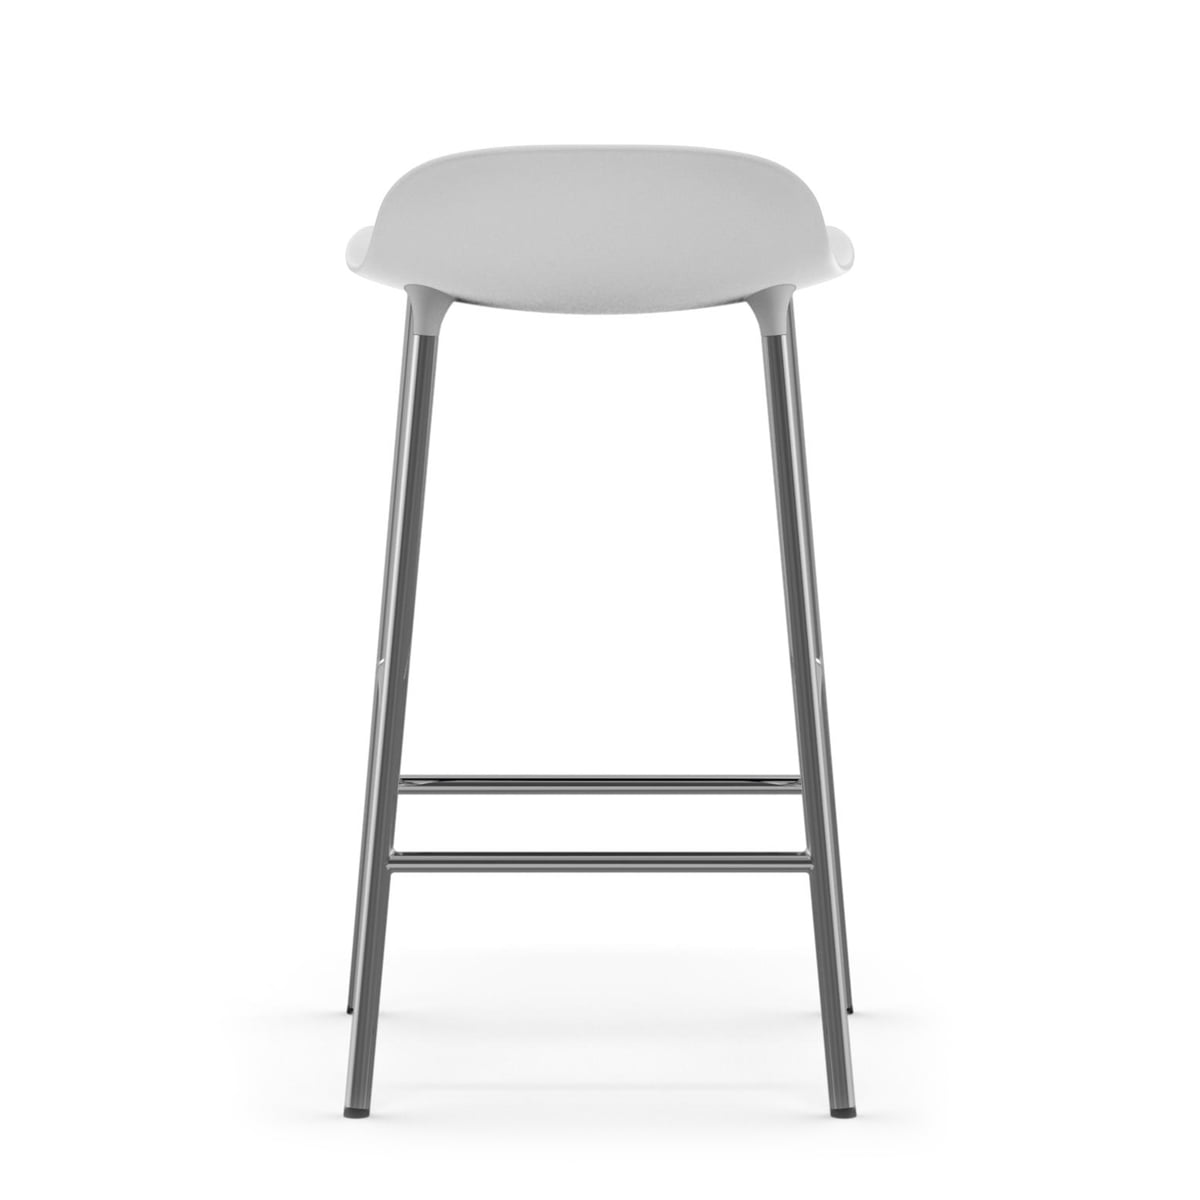 65 bar stool form by normann copenhagen for Barhocker normann copenhagen